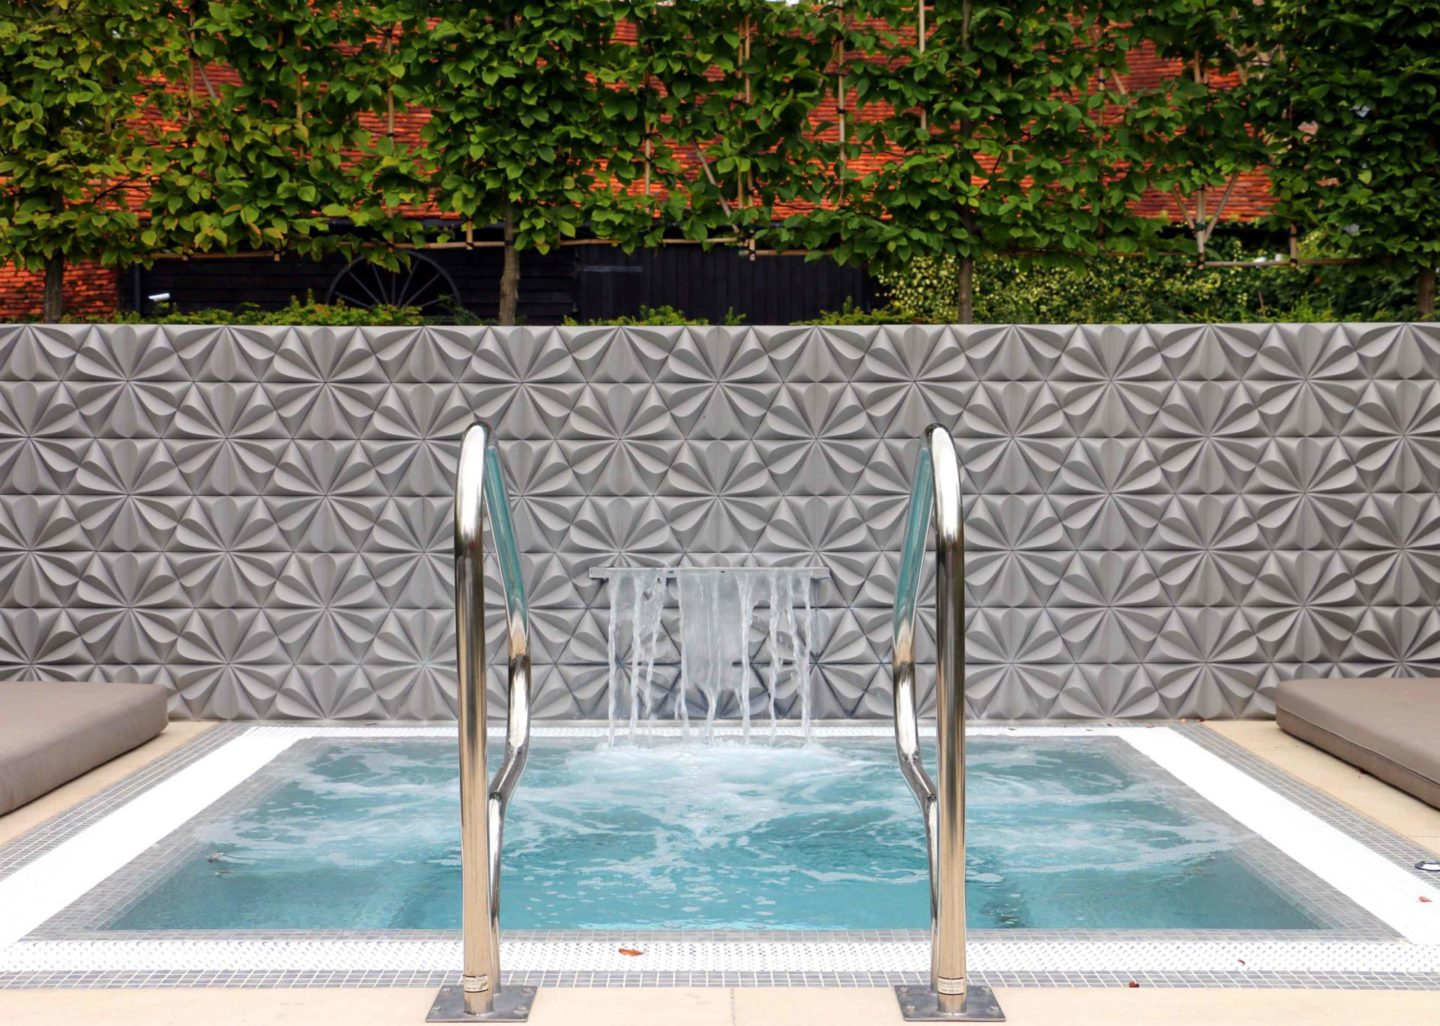 tub from tubs top foodaholic own grounds luxury uk gated hot hotels their wood fenced have off style some mews img with suites cedar outdoor and canadian the